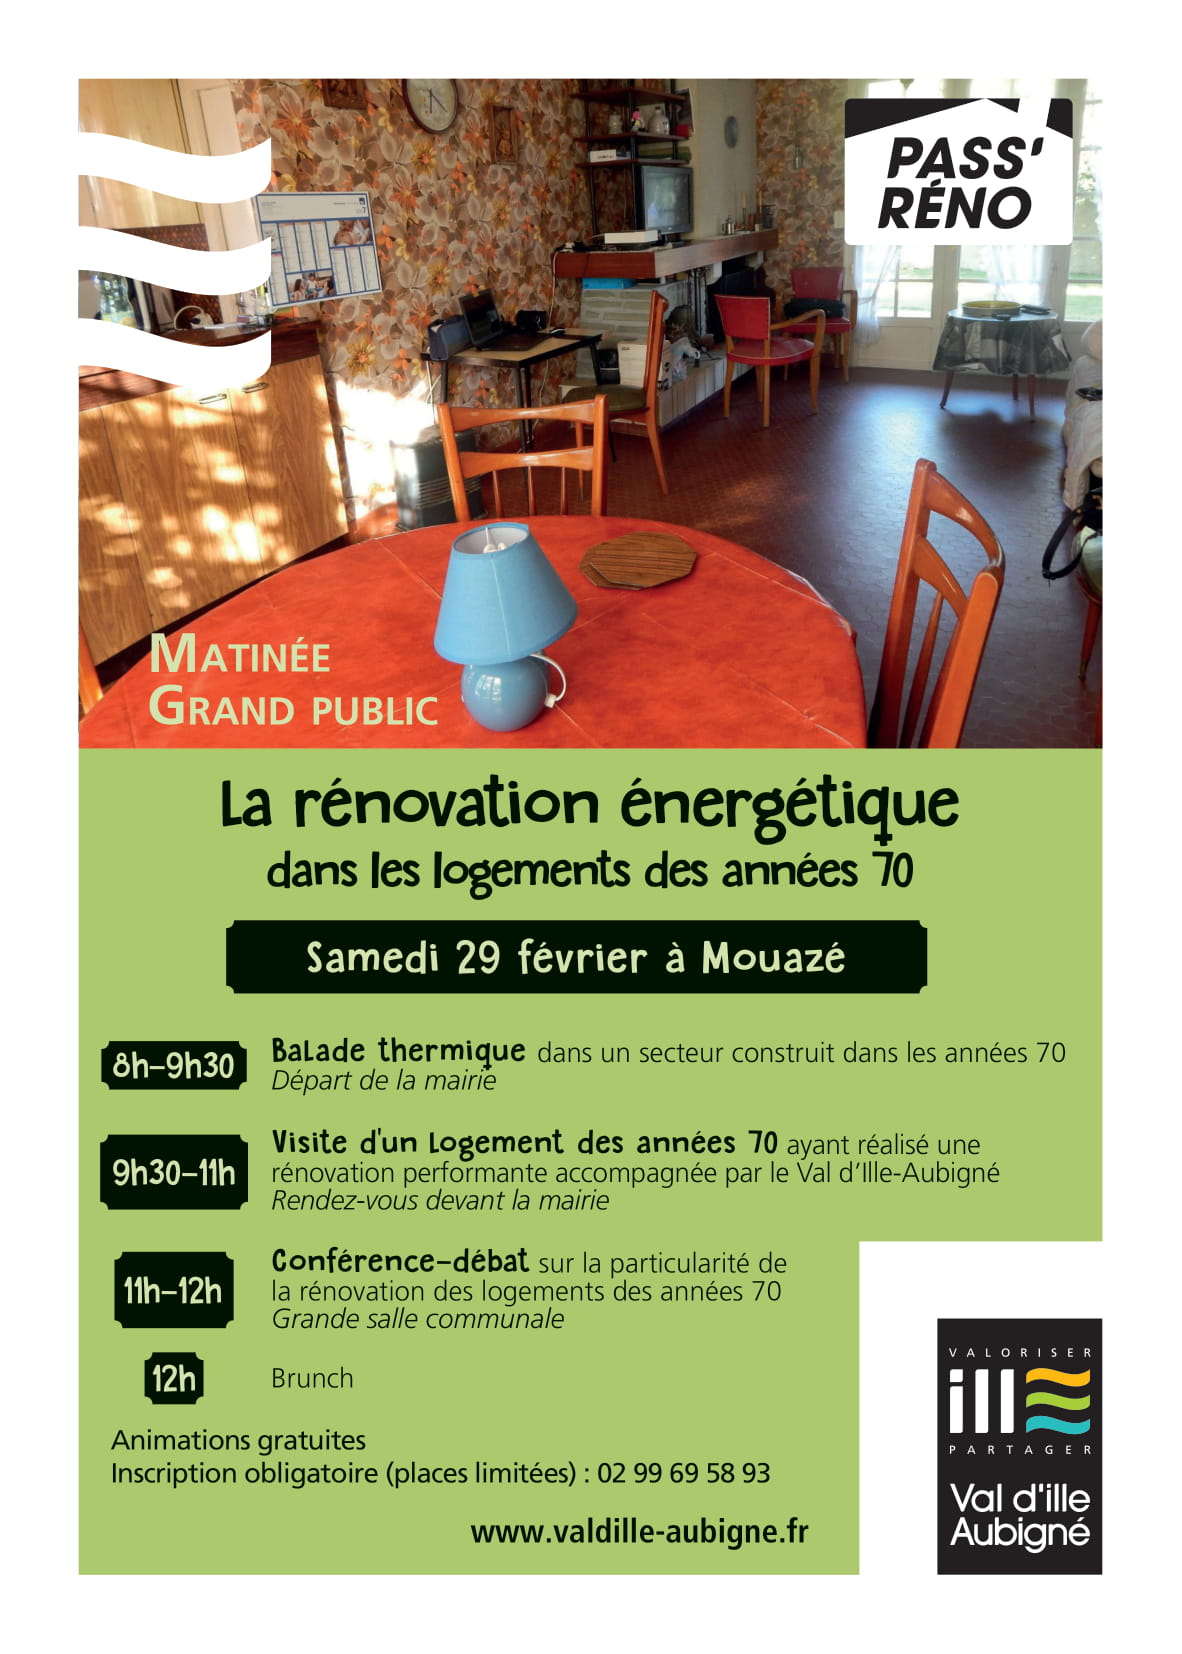 flyer_renovation_energetiquev2-1.jpg